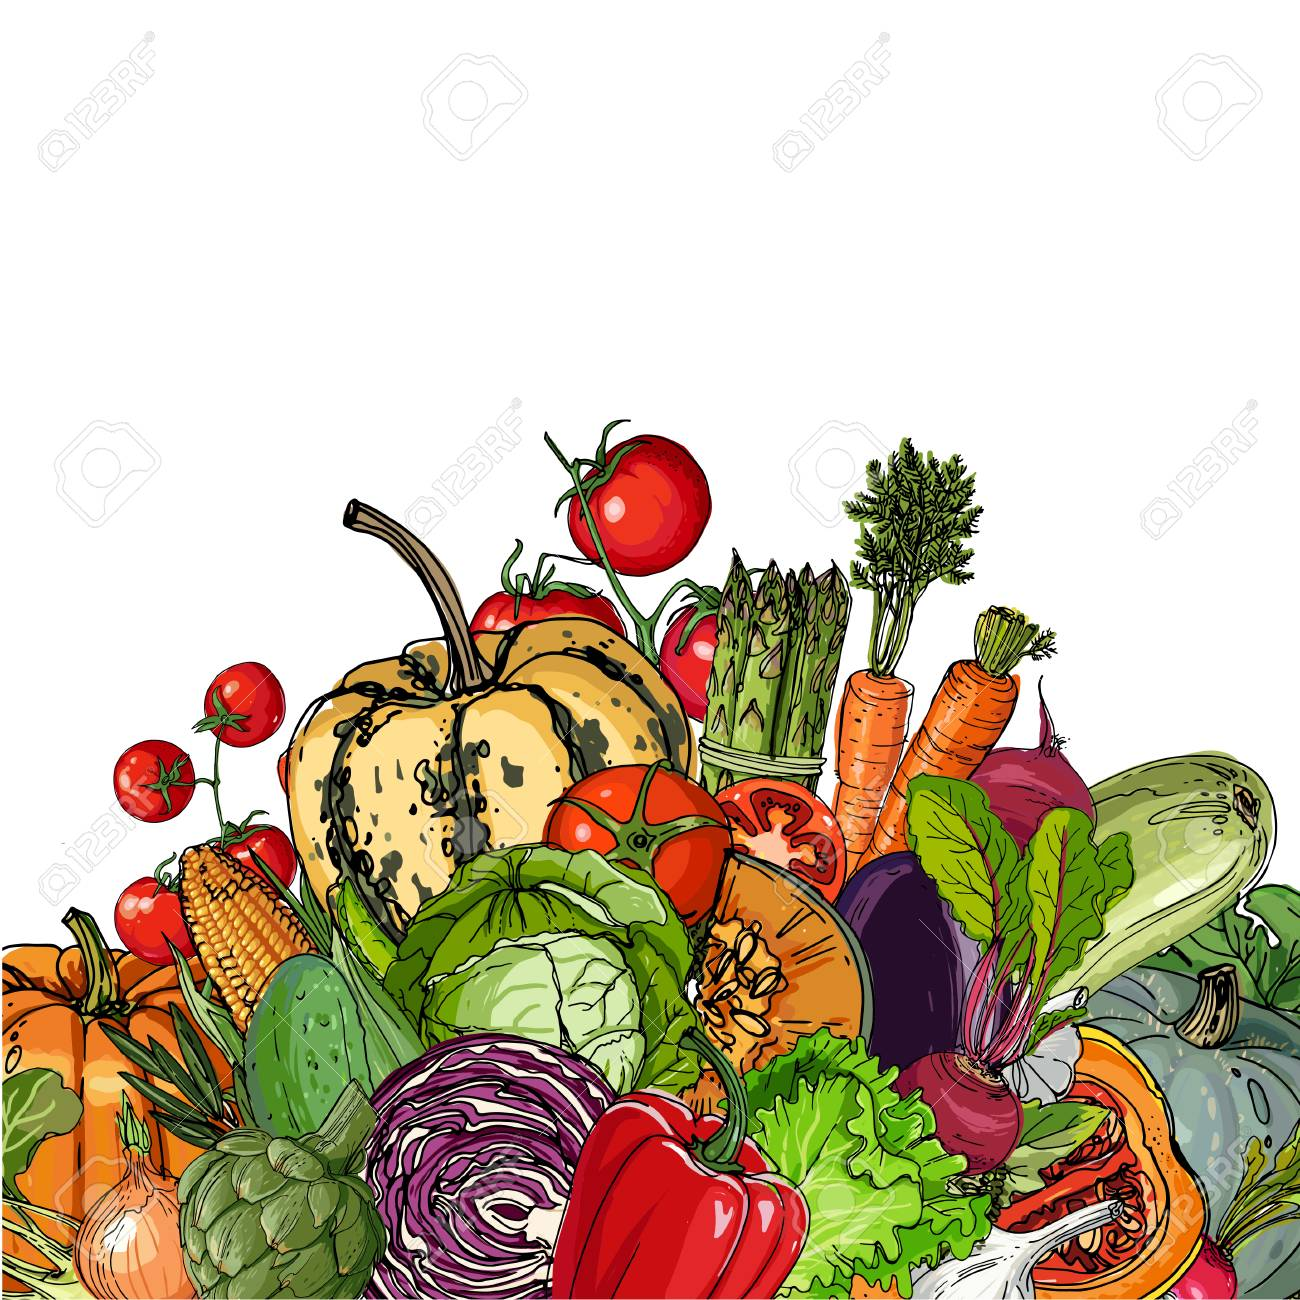 Square of colored vegetables - 102050863